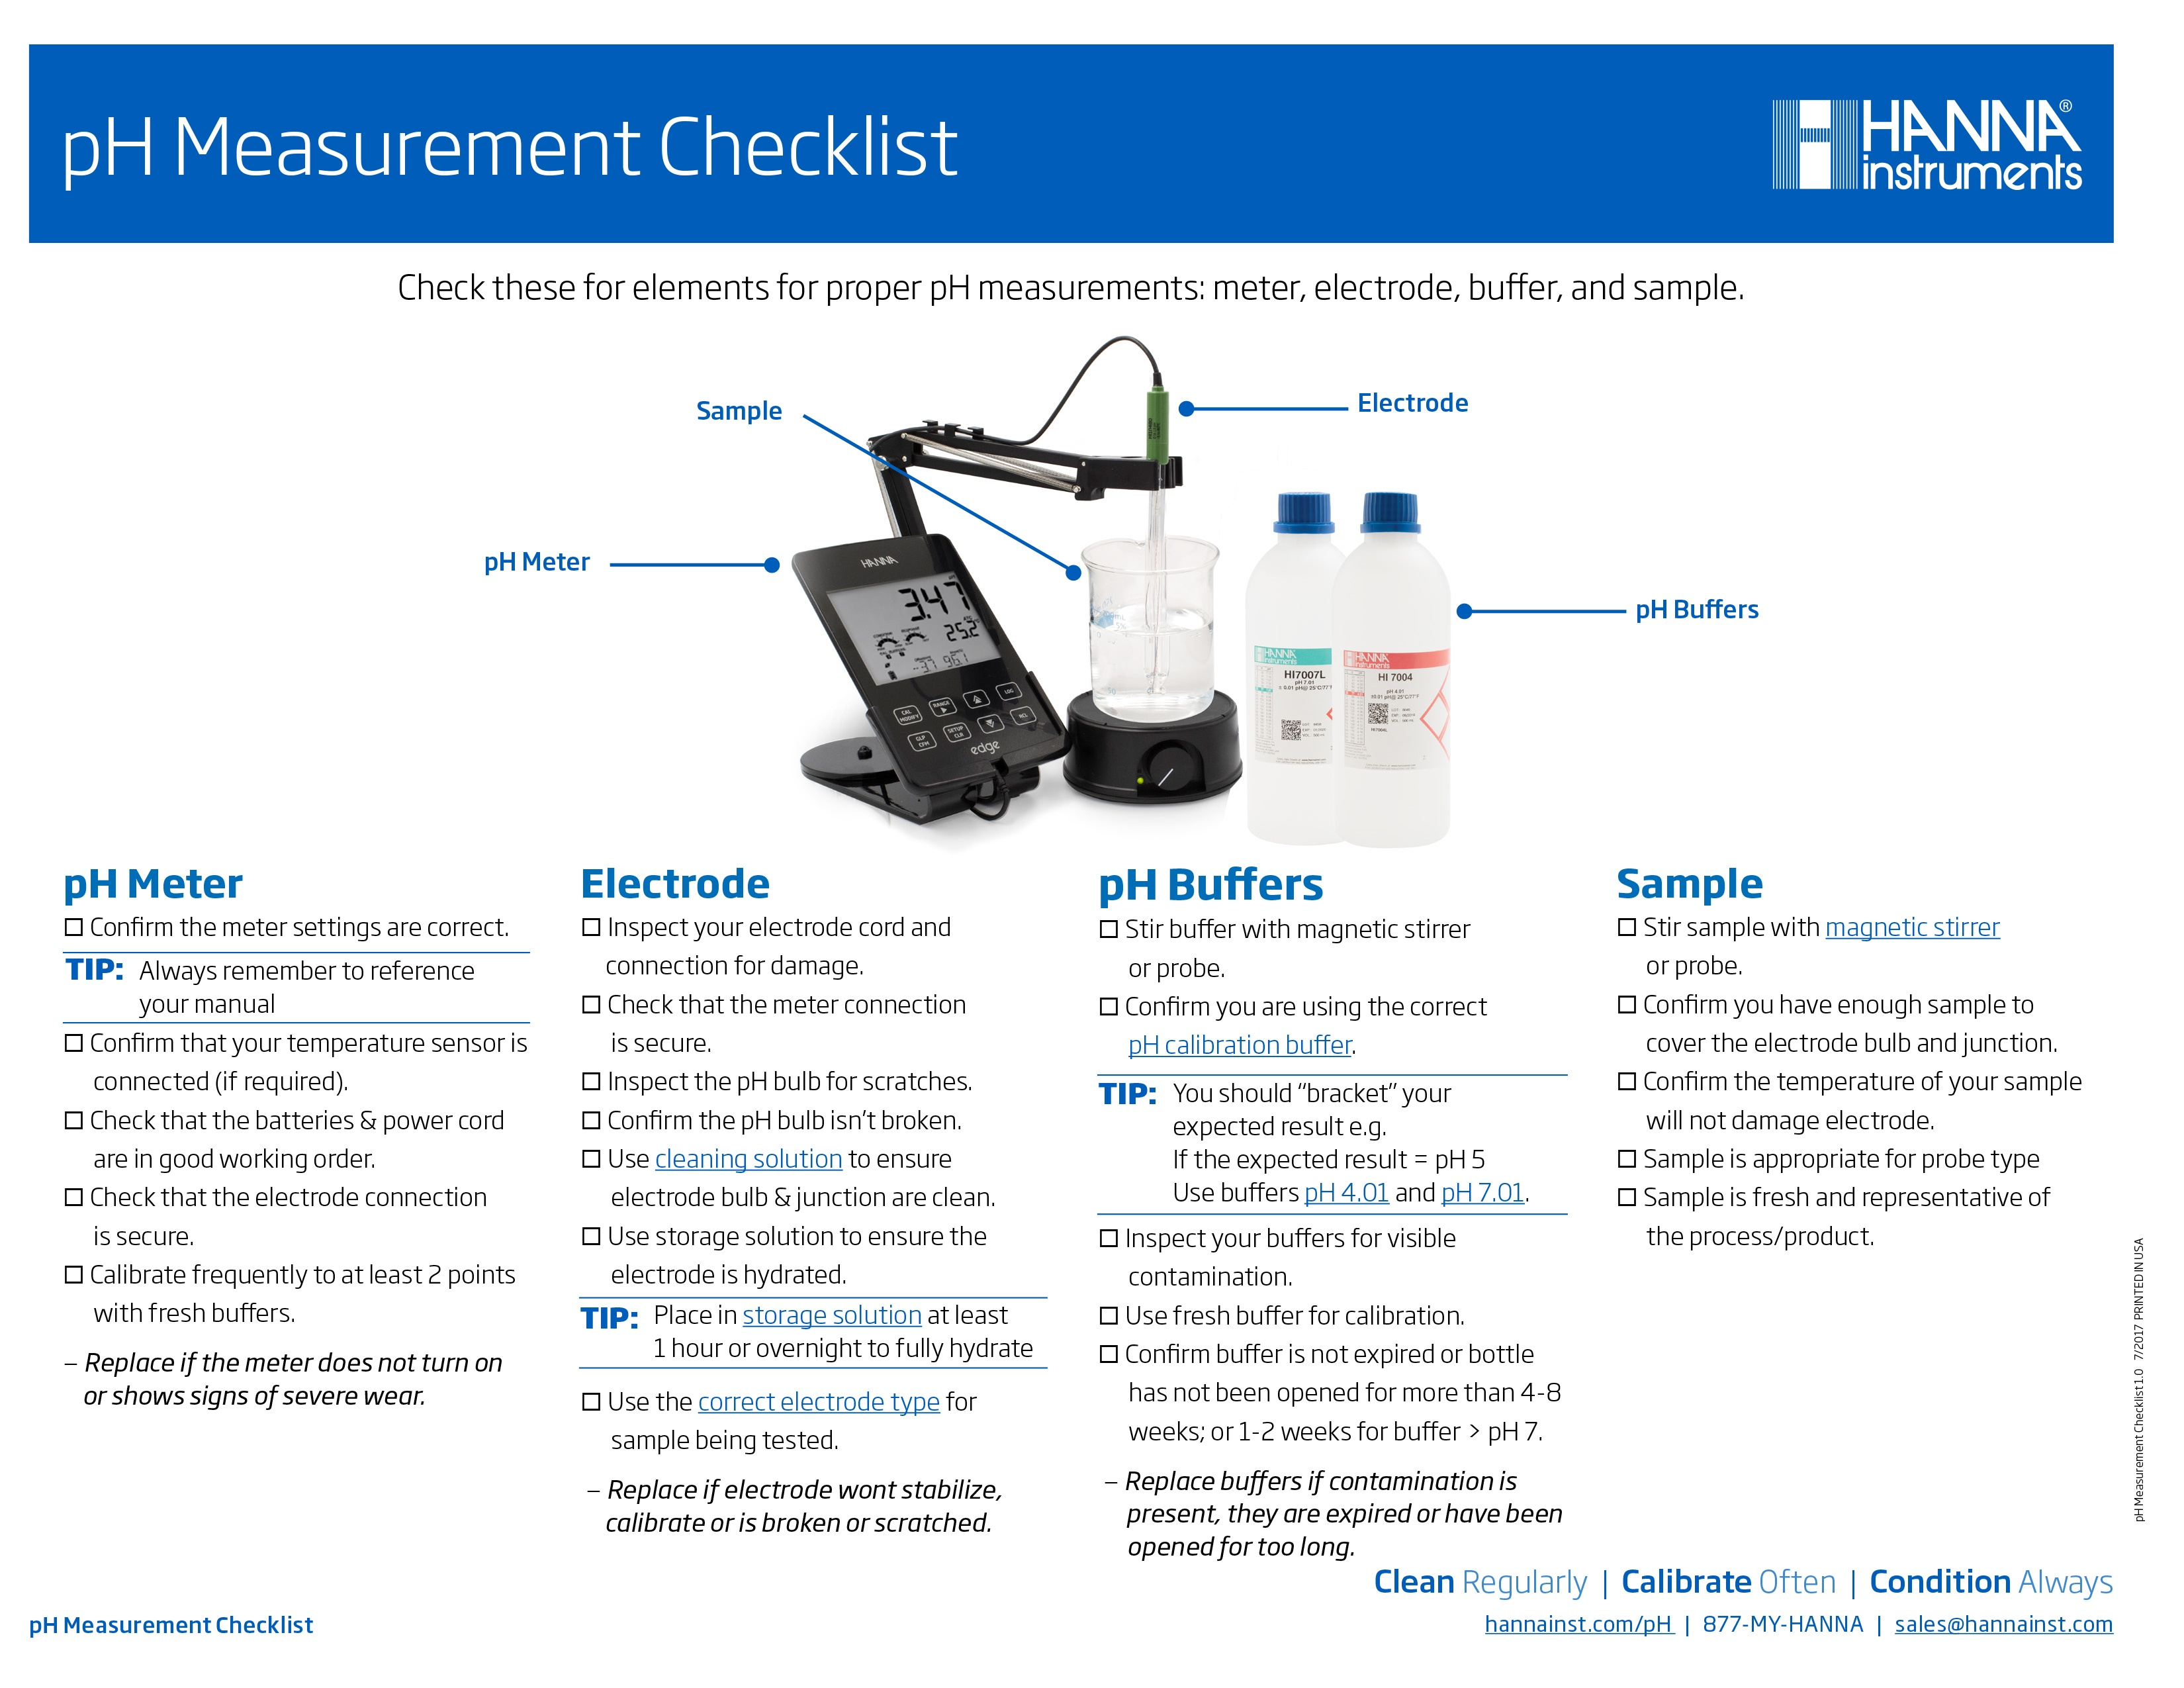 pH Measurement Checklist Hanna Instruments